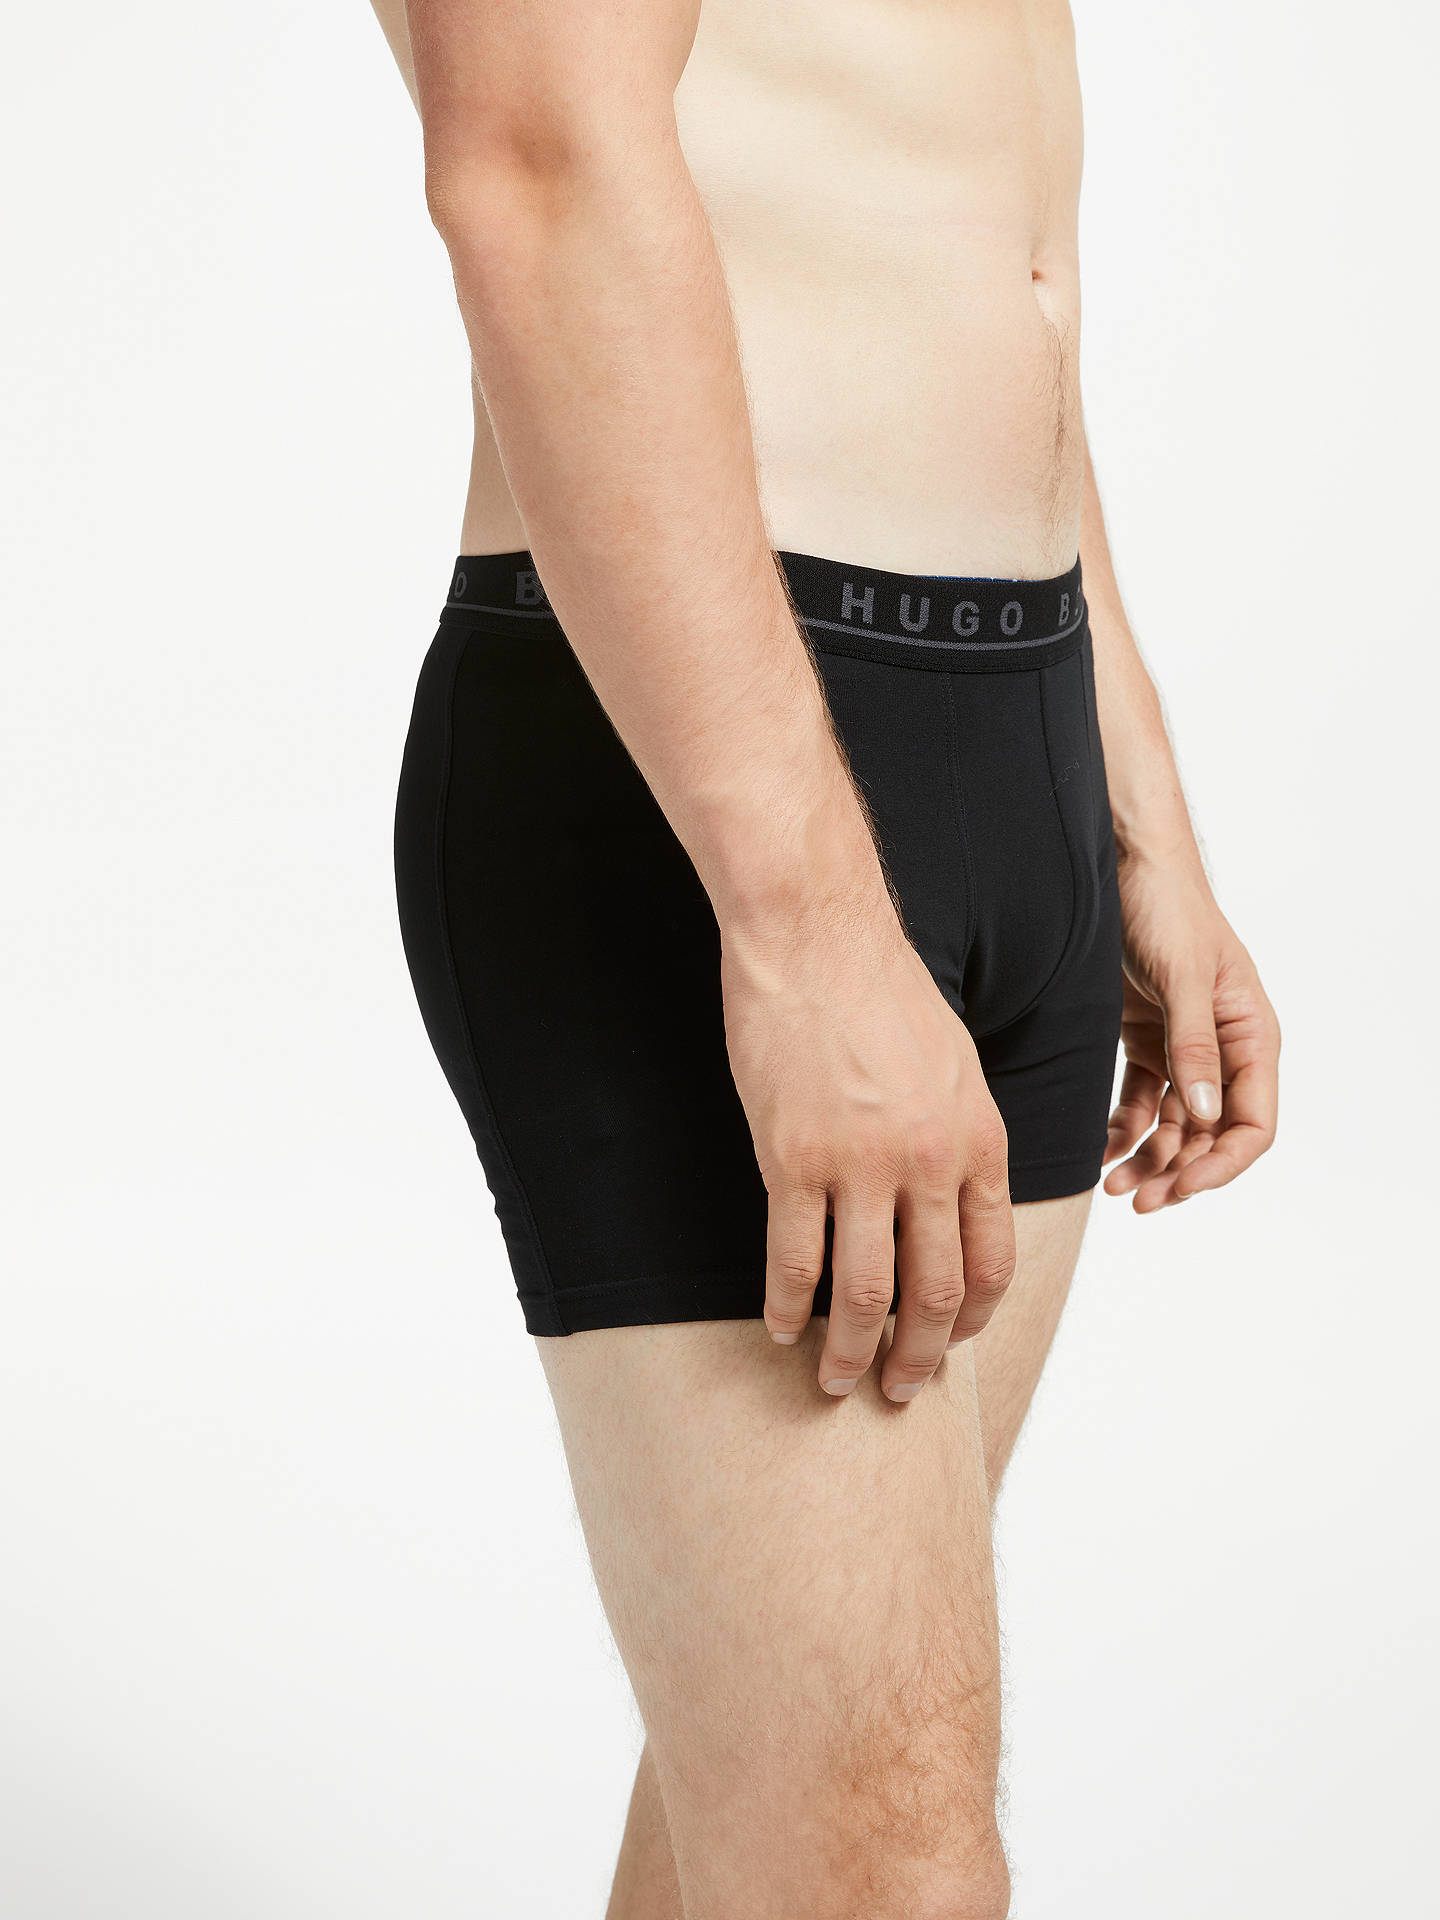 BuyBOSS Stretch Cotton Trunks, Pack of 3, Black/Blue/Red, XL Online at johnlewis.com